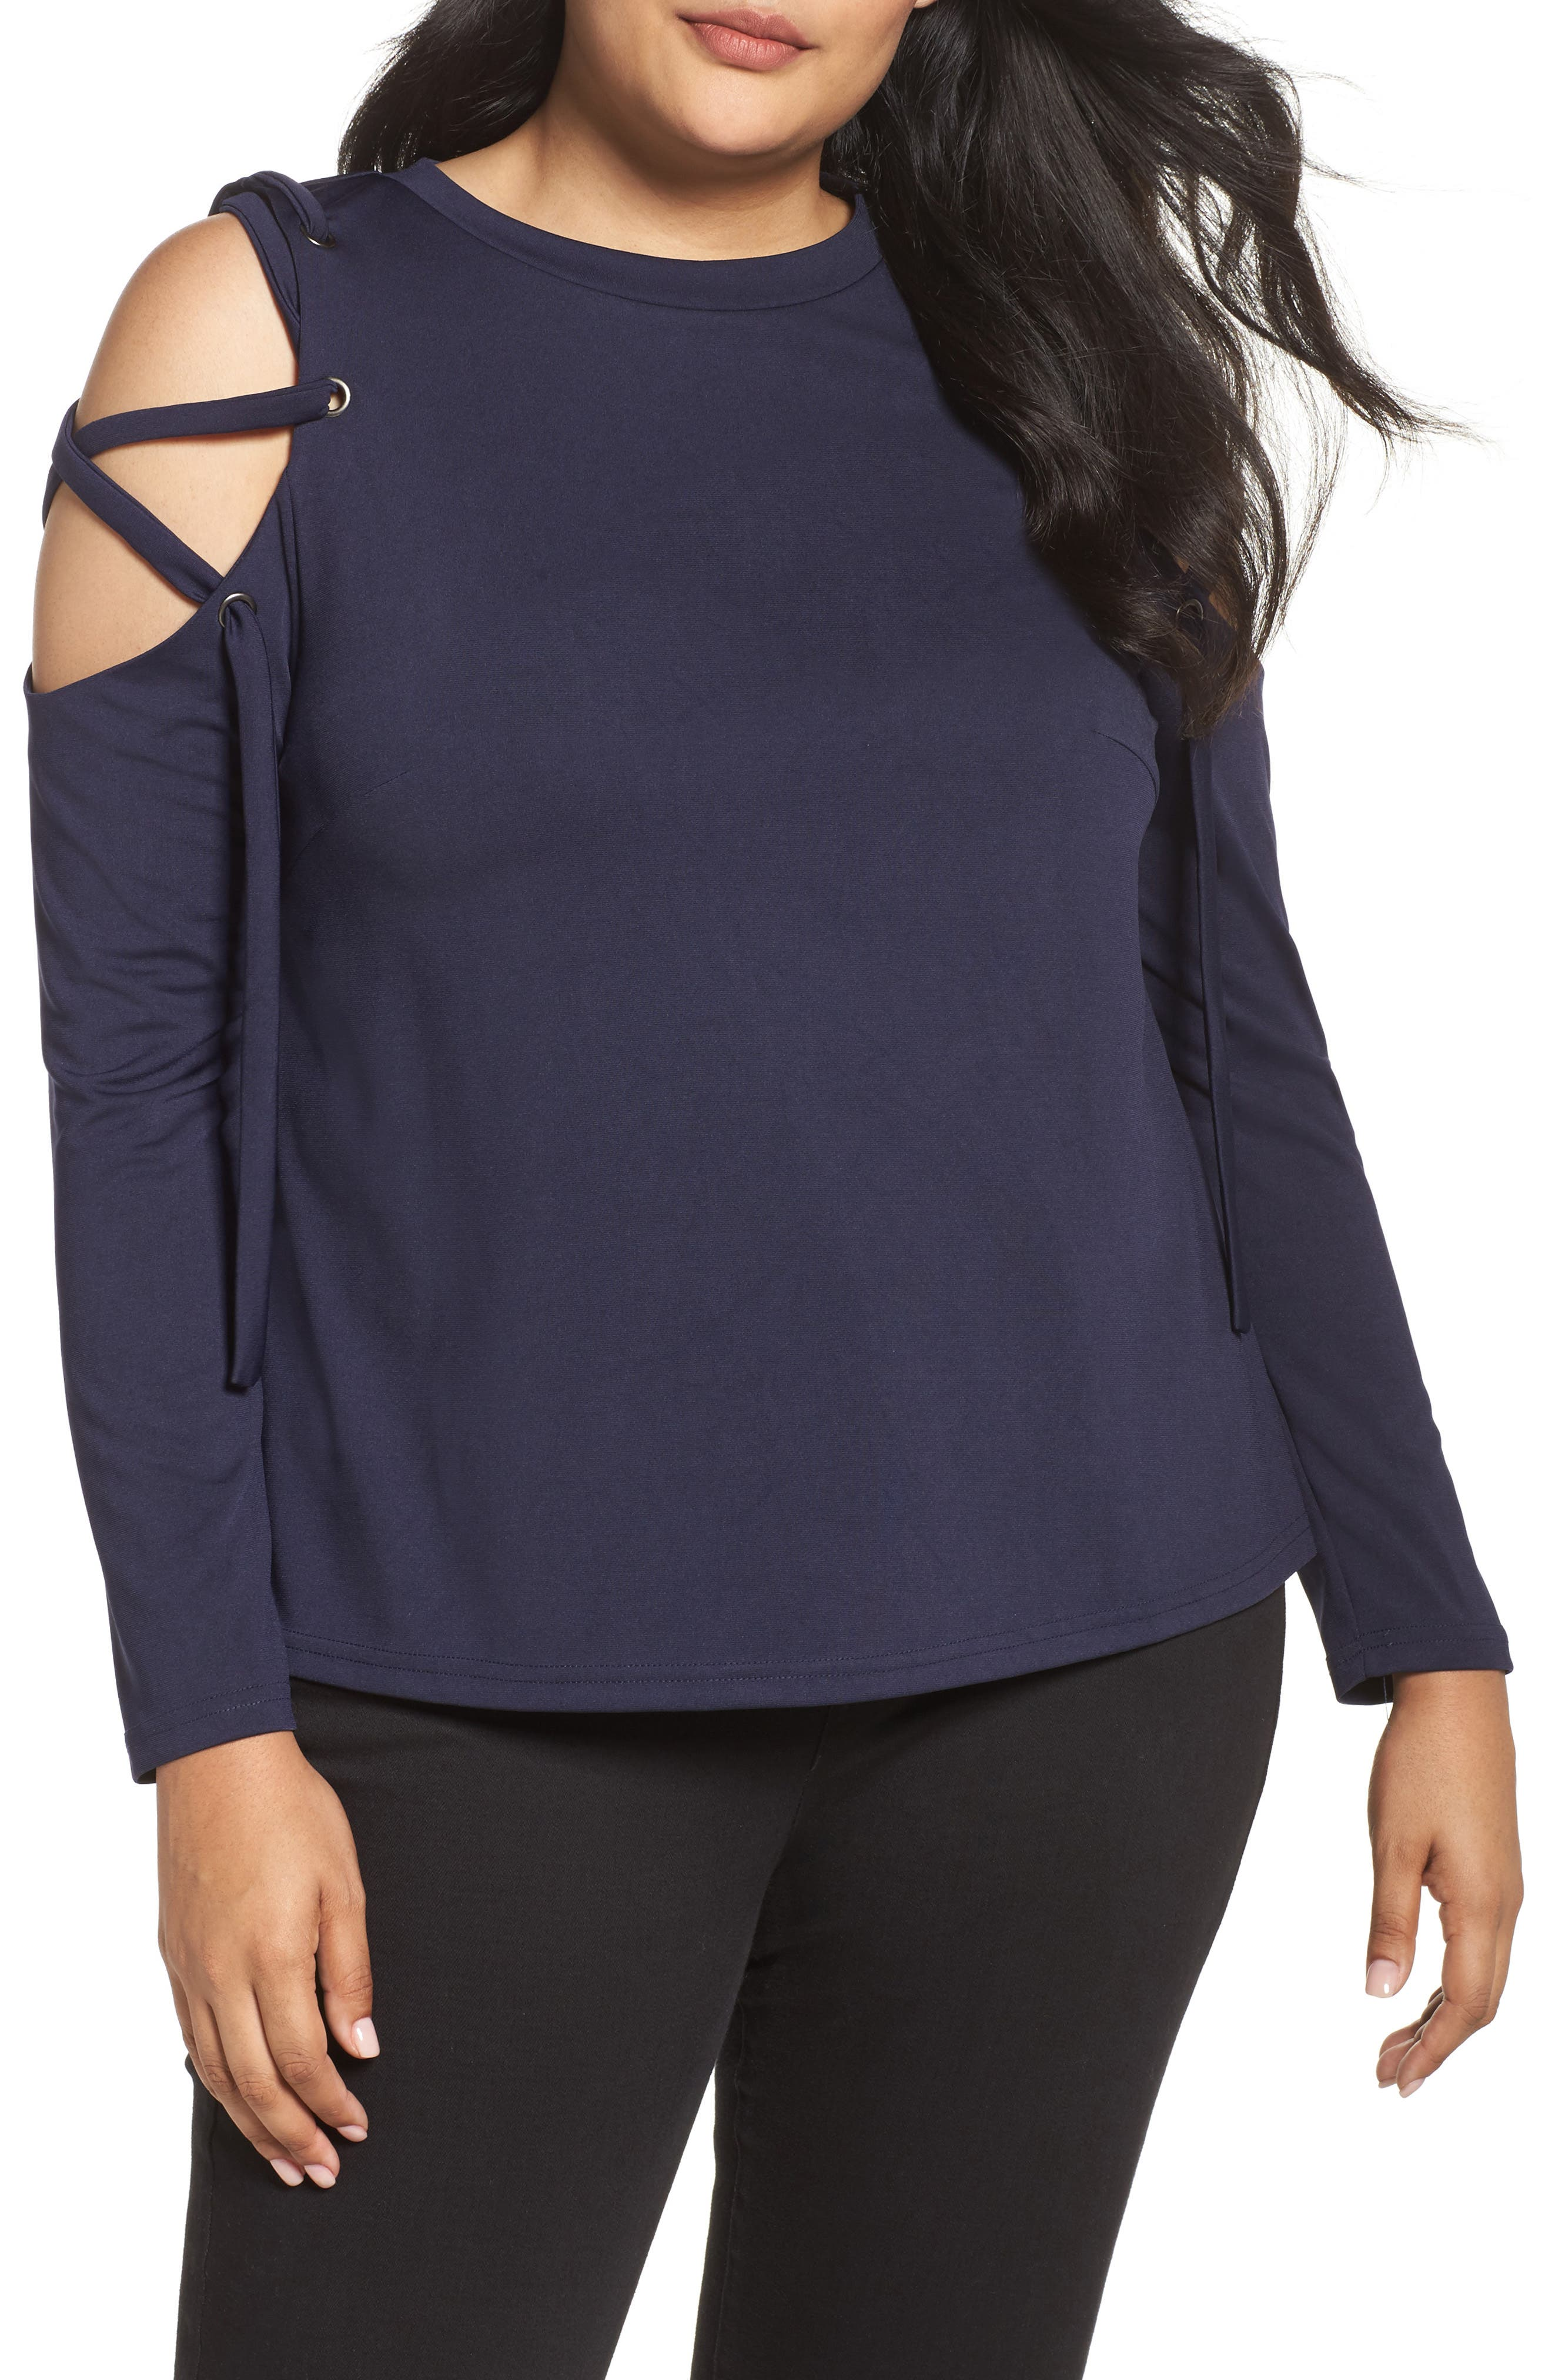 Alternate Image 1 Selected - Lost Ink Eyelet Lace-Up Sleeve Top (Plus Size)